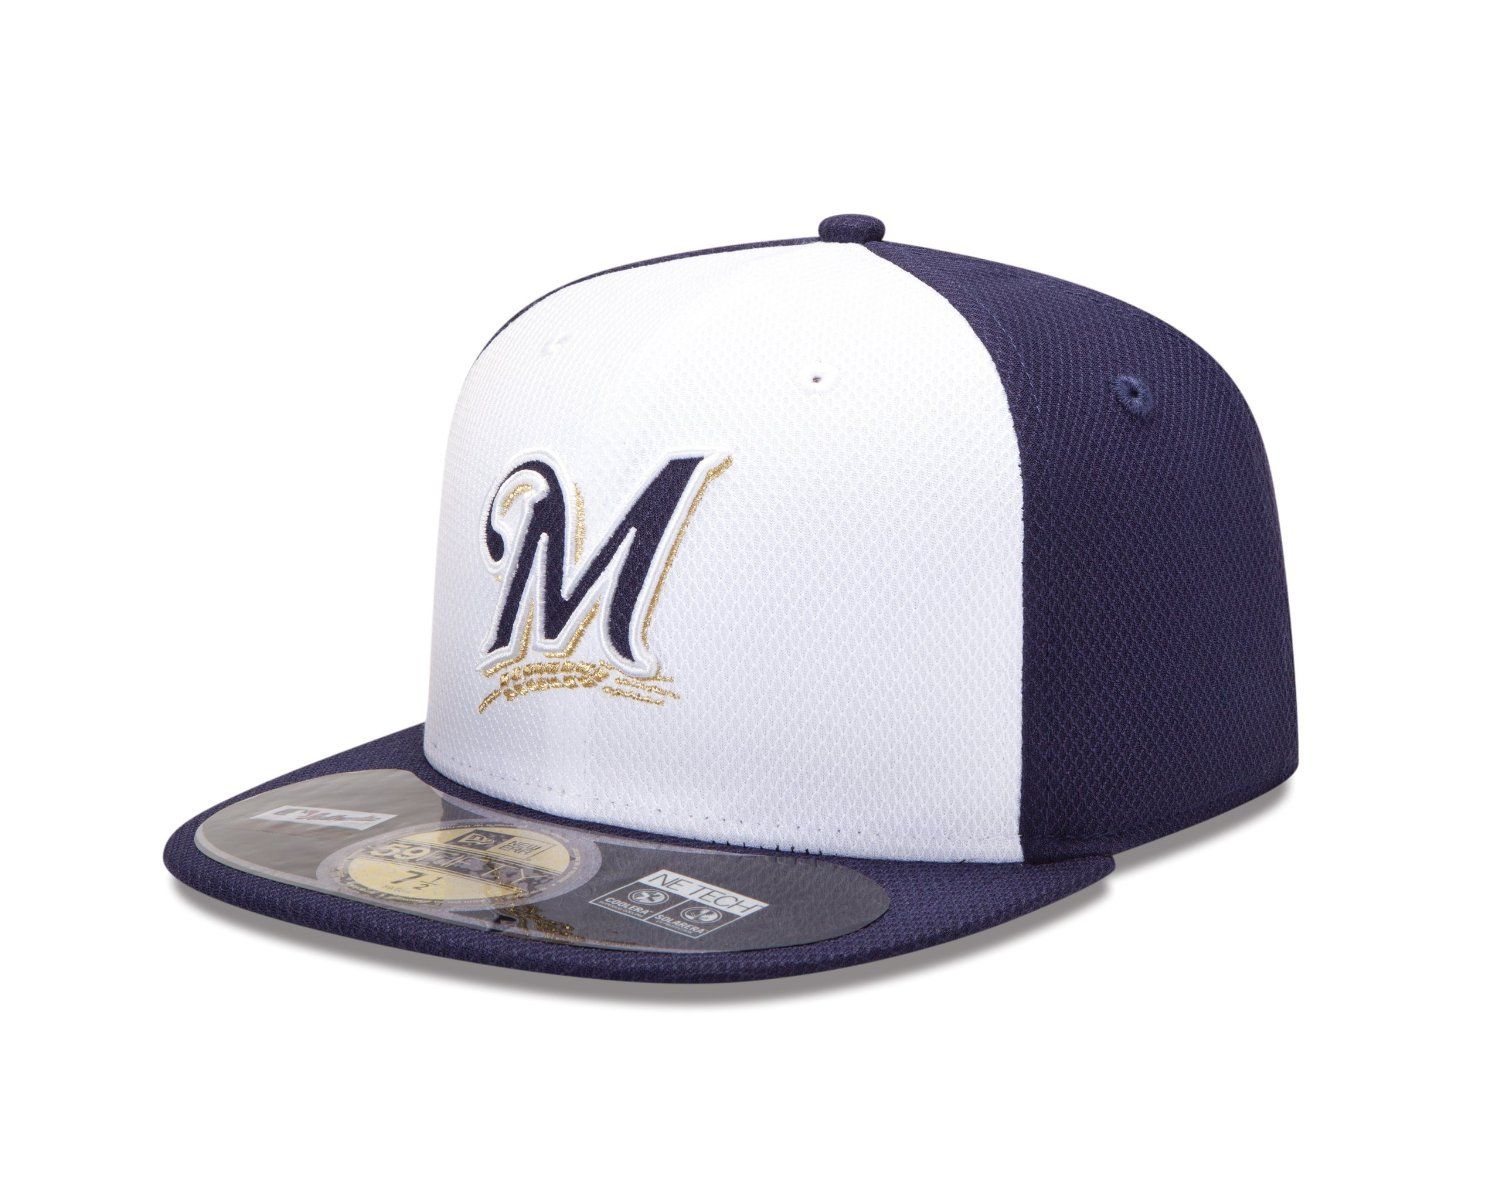 db80e4dff24b1 Diamond Era 59Fifty MLB Milwaukee Brewers Gorra de béisbol  Amazon.com.mx   Deportes y Aire Libre